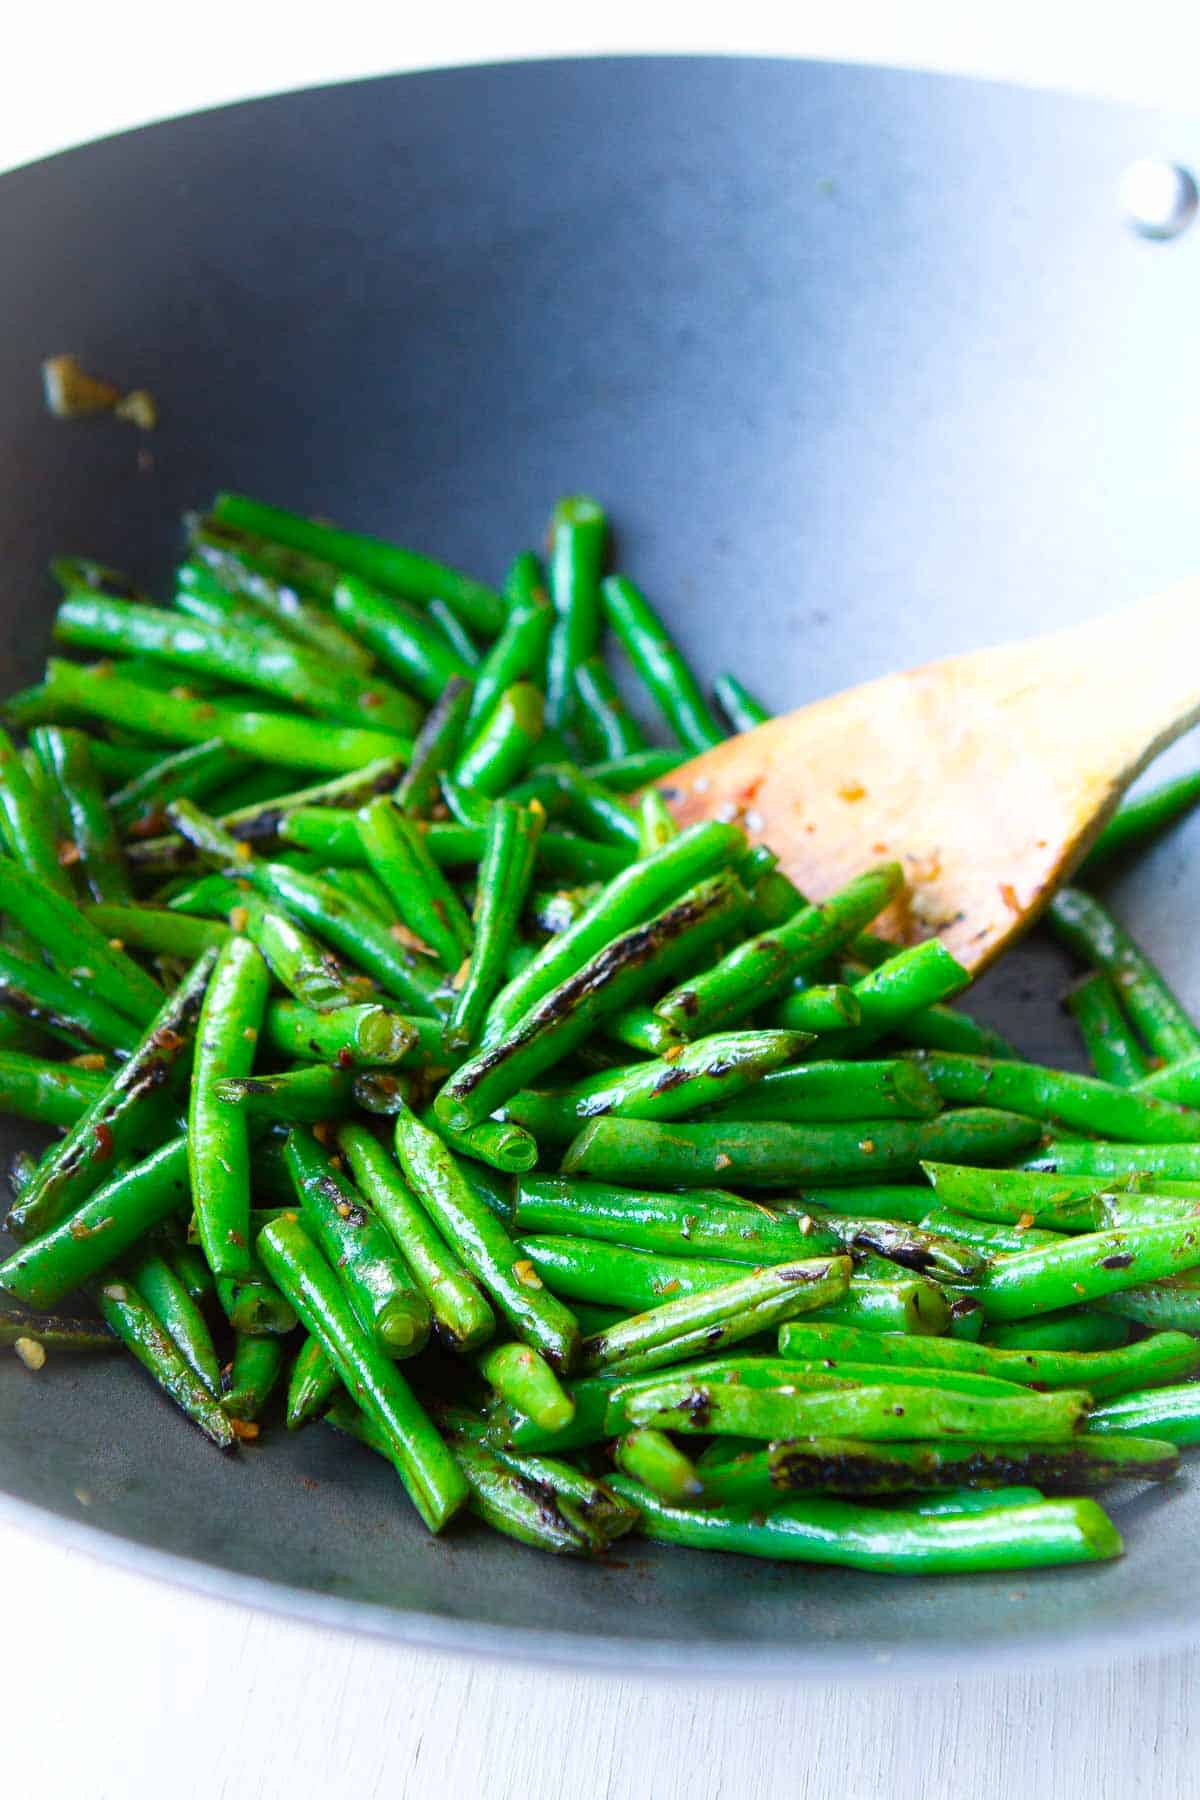 Green beans in a nonstick wok with a wooden spoon.